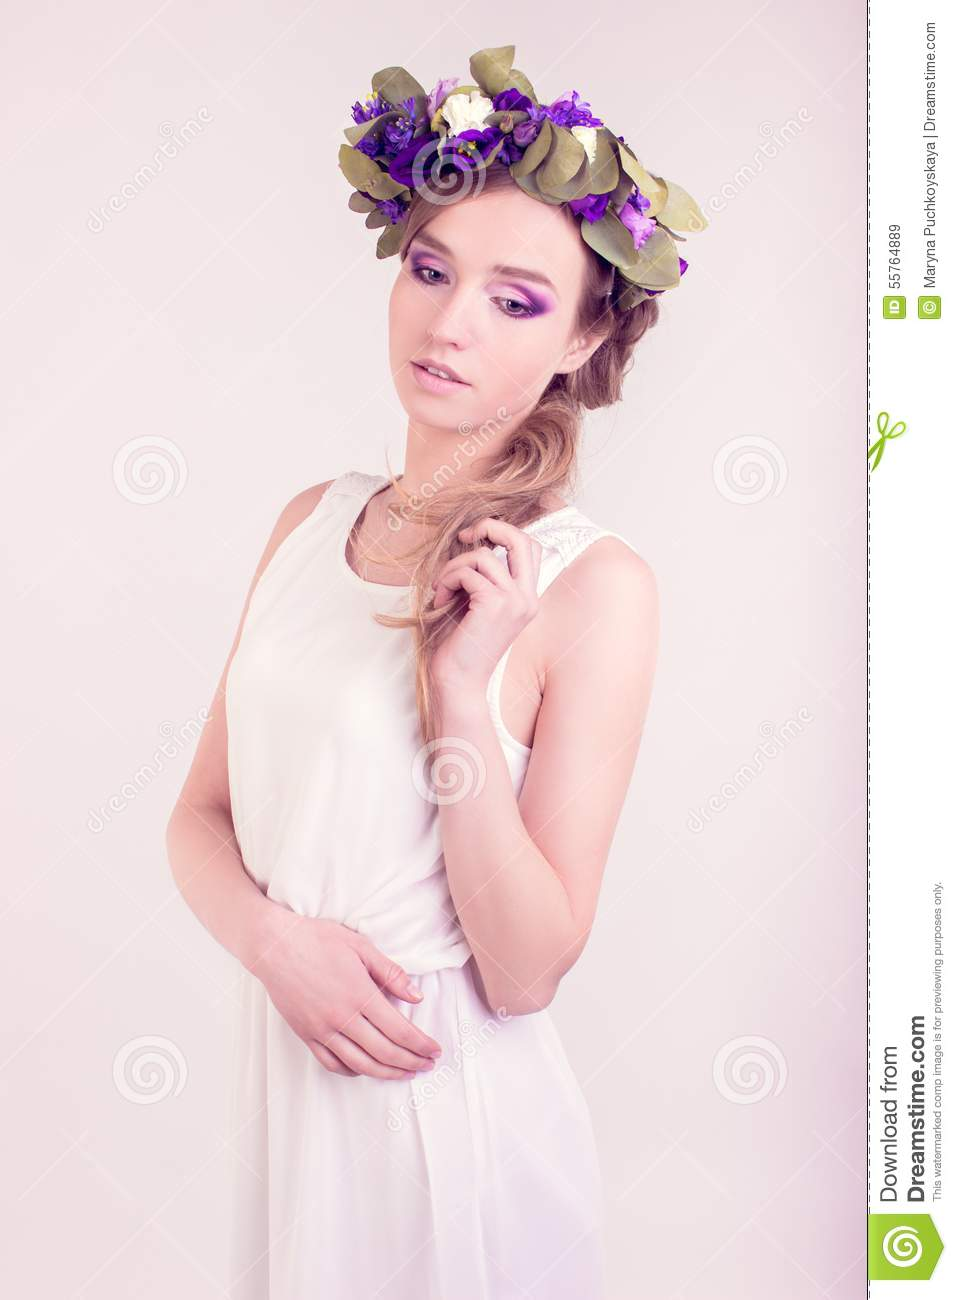 Girl With Flower Crown Posing In Studio Stock Image Image Of Face